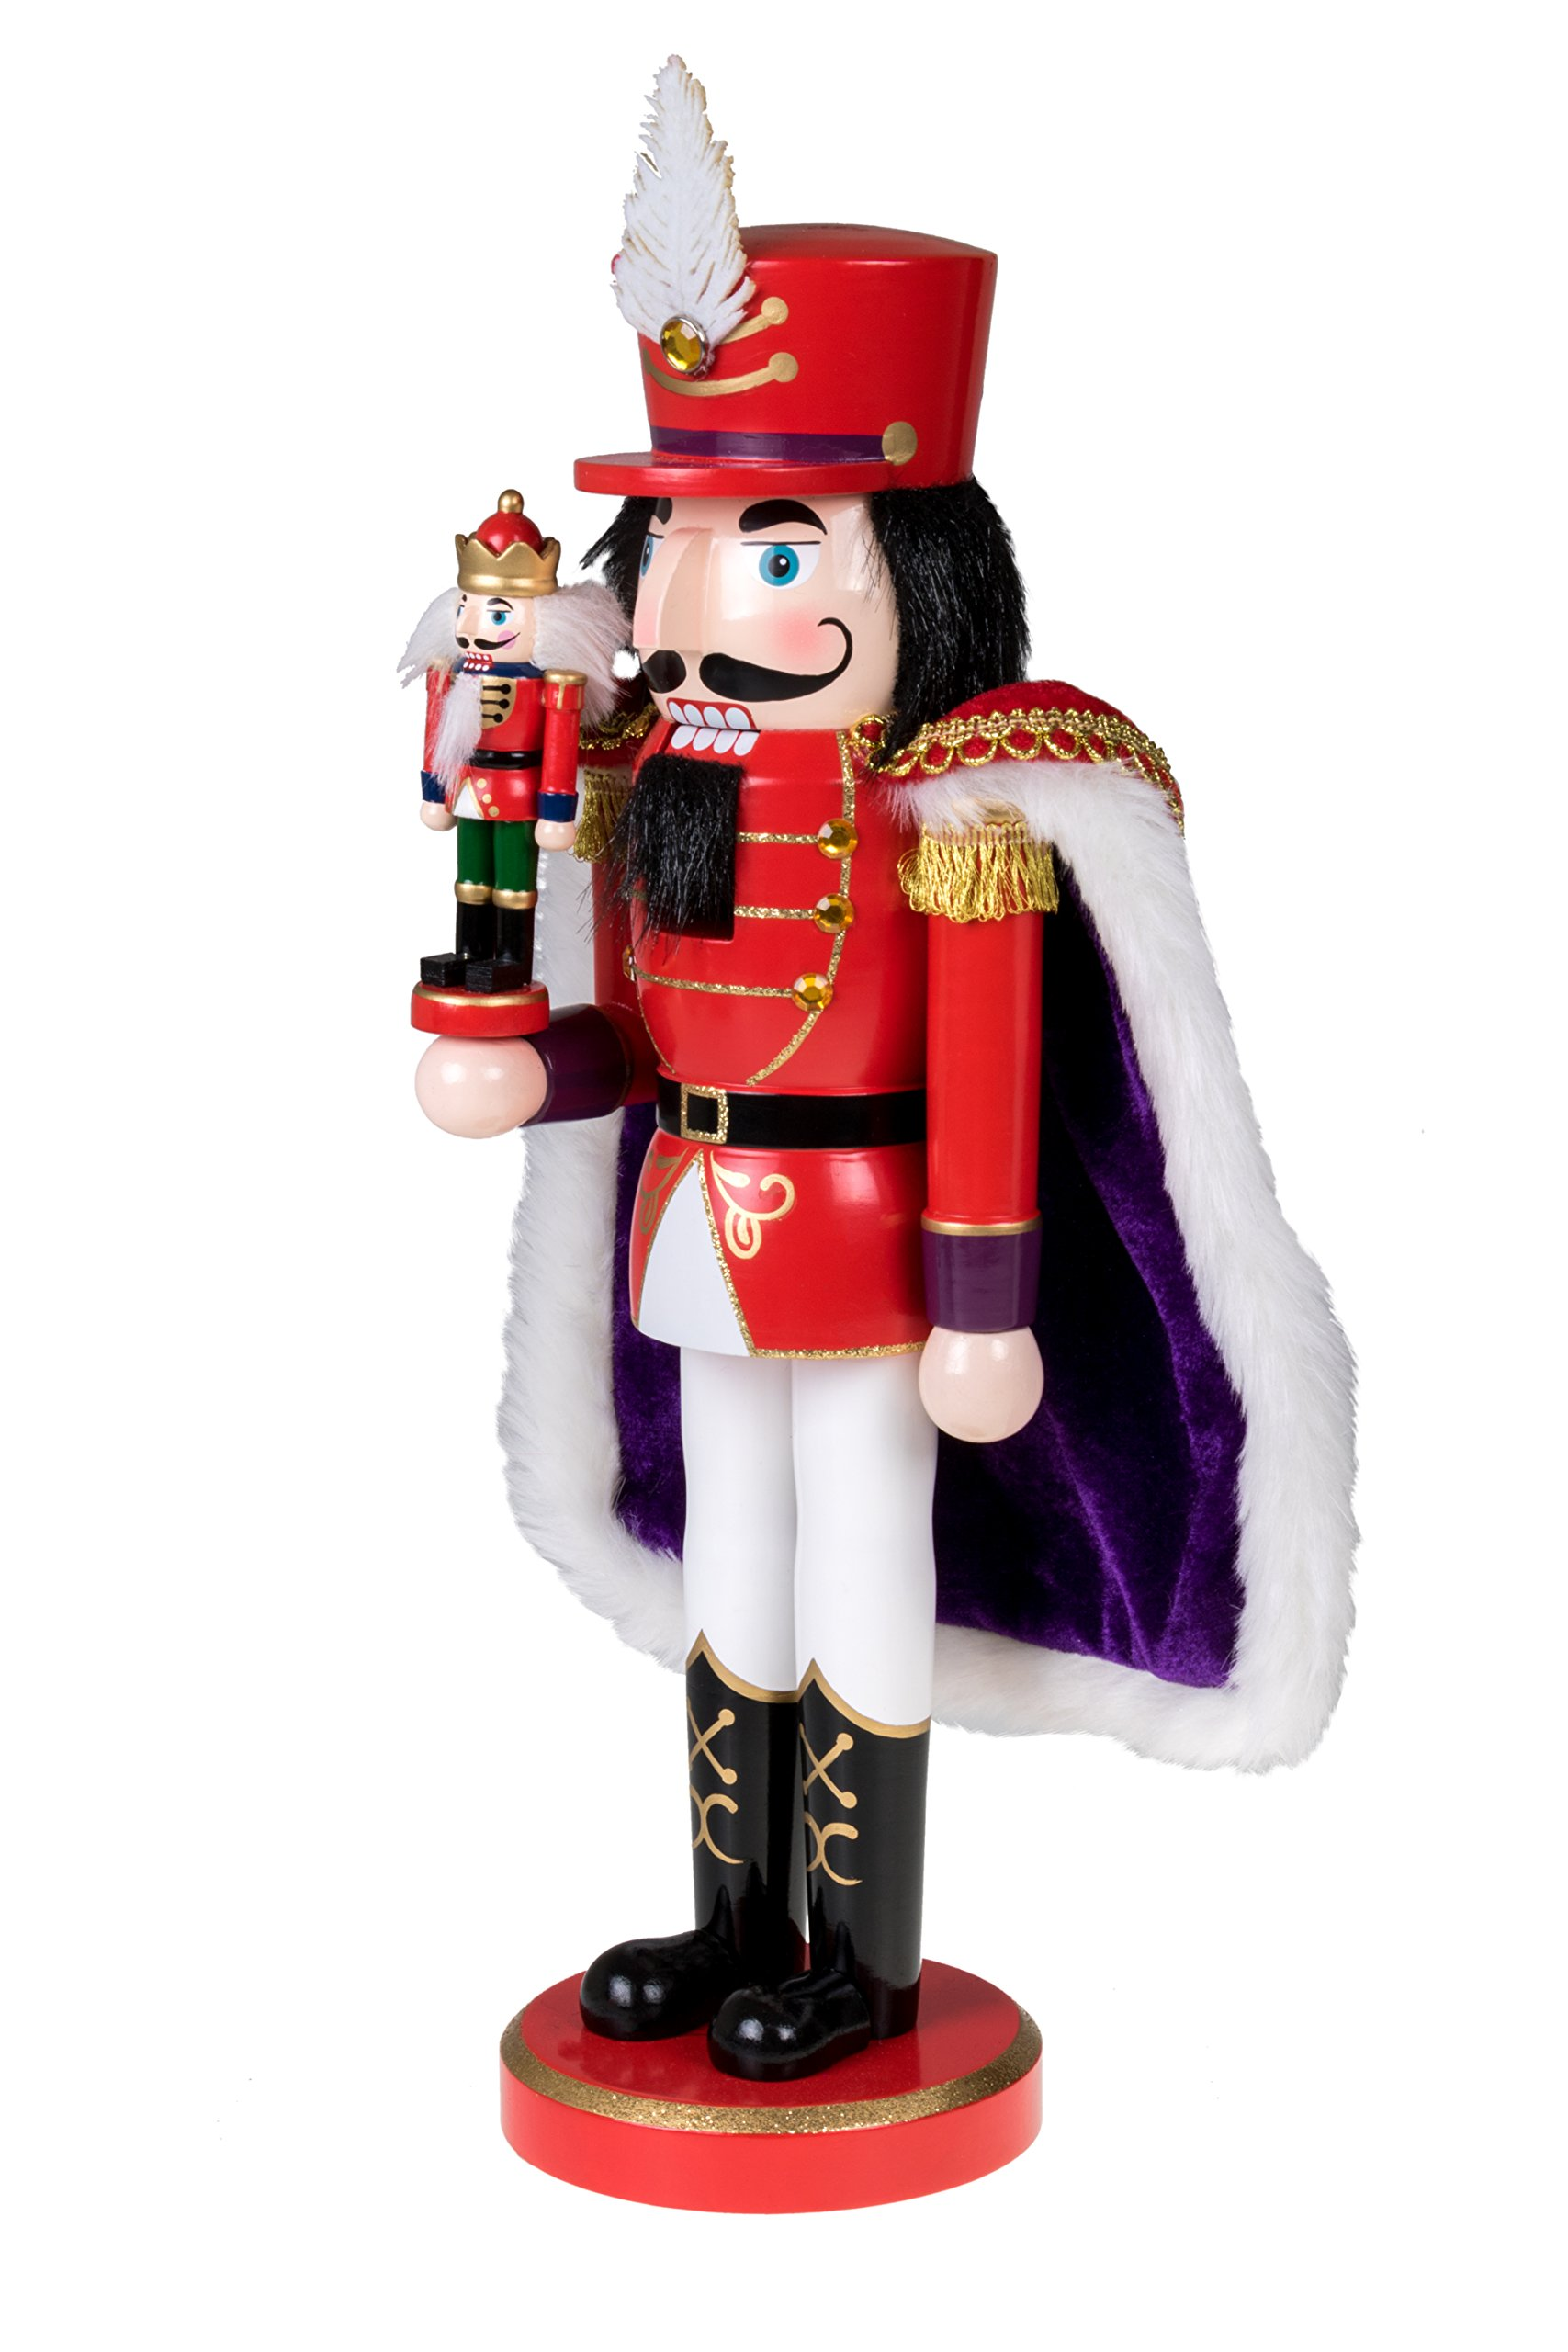 Clever Creations Red Prince Wooden Nutcracker Wearing Purple Cape Holding Toy Nutcracker Gift | Festive Decor | Perfect for Shelves and Tables | 100% Wood | 14'' Tall by Clever Creations (Image #4)